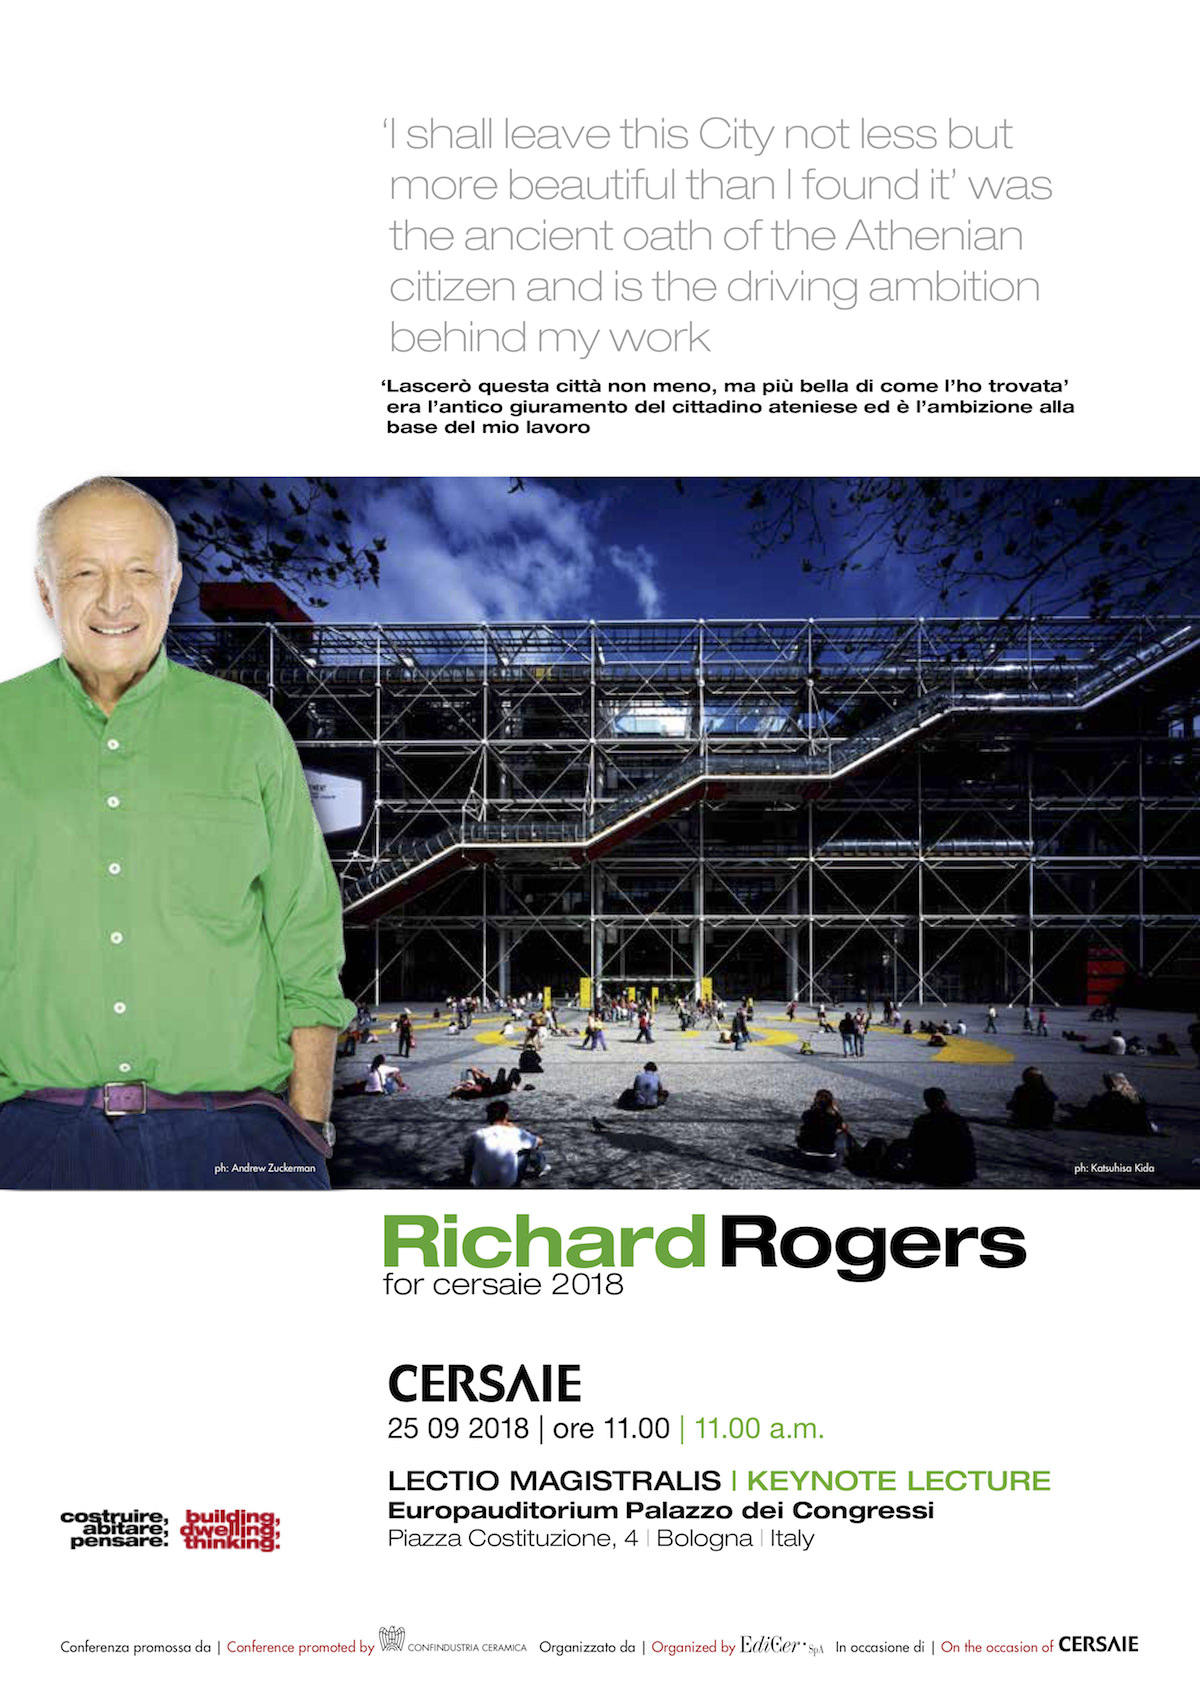 Richard-Rogers-Cersaie-2018